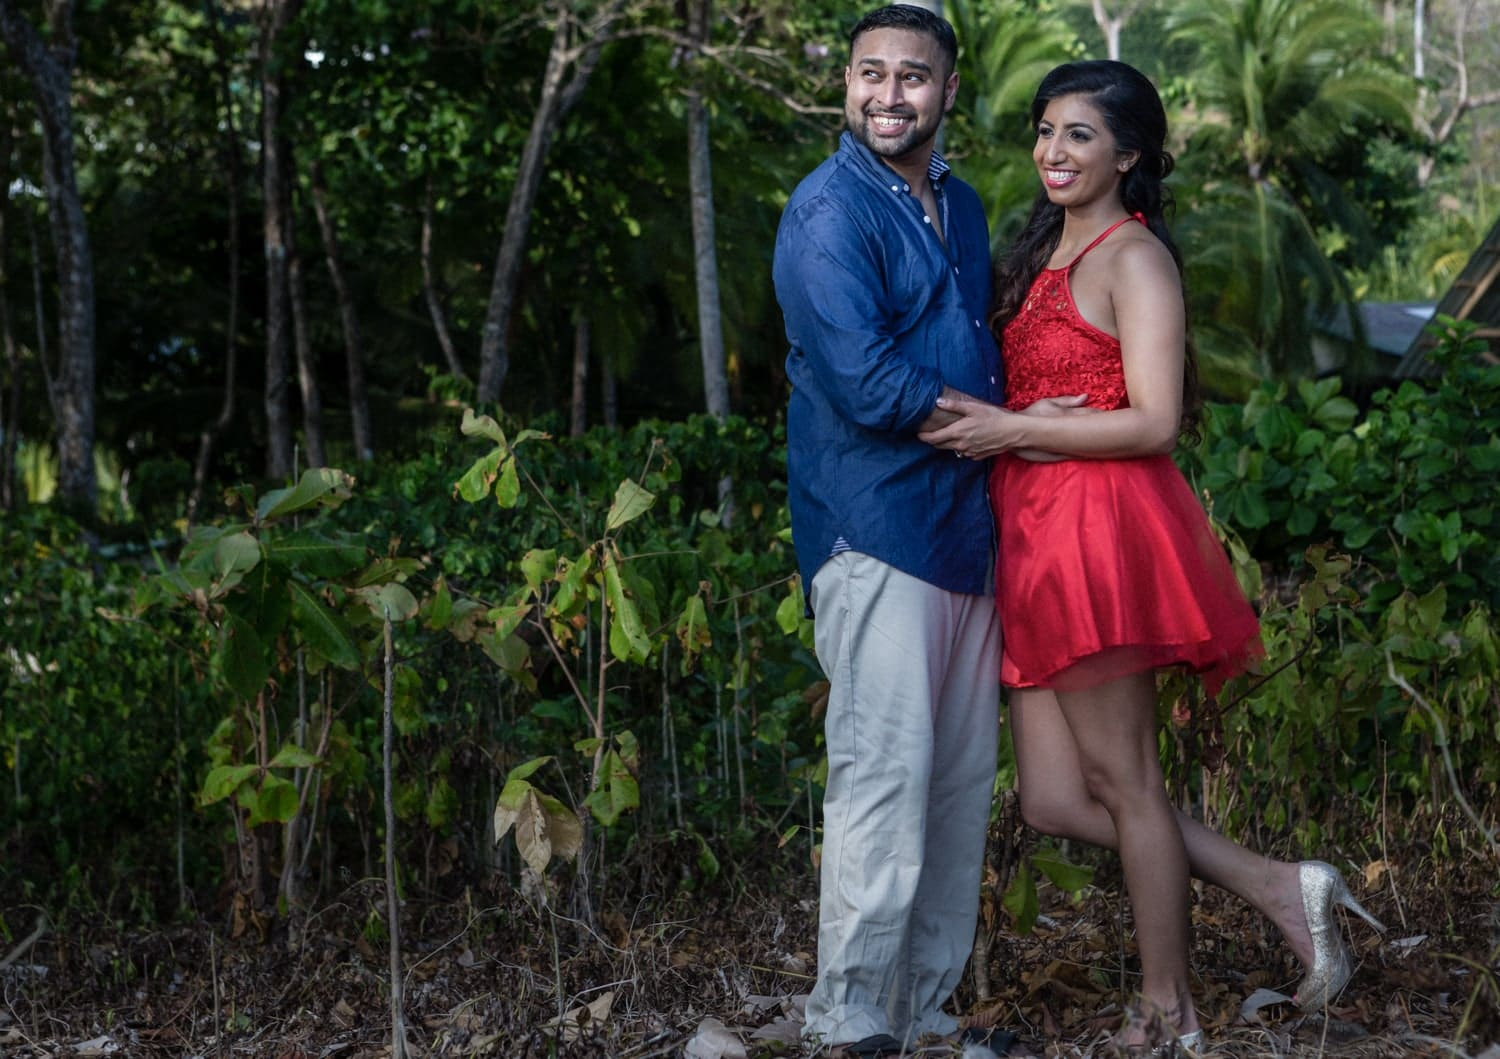 Lovers in casual clothing in Costa Rica rainforest while getting engaged.